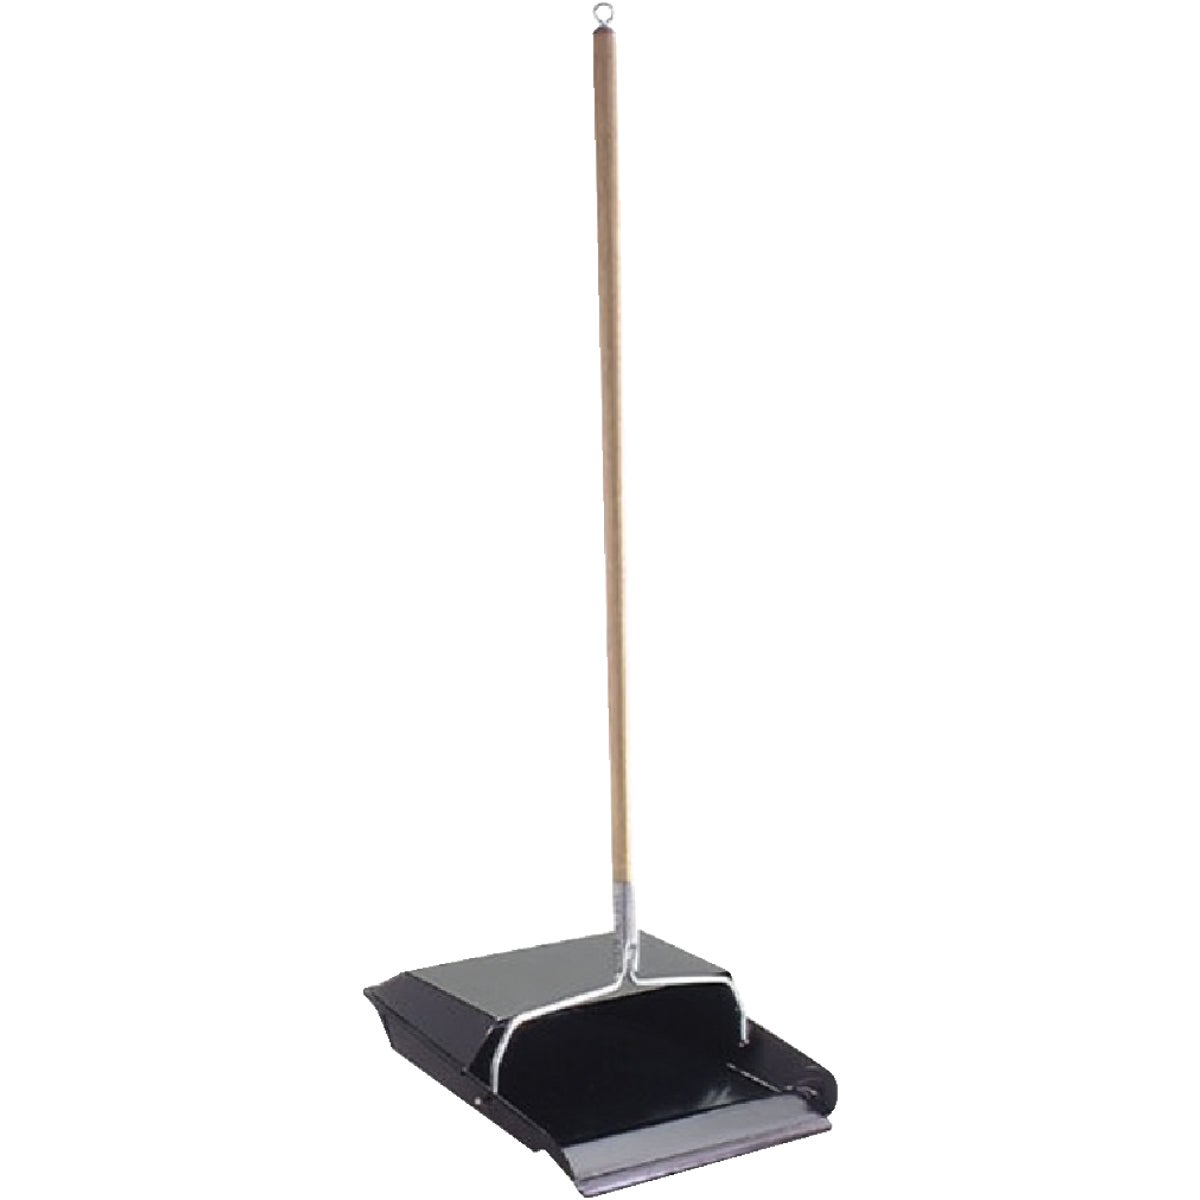 LONG HANDLE DUSTPAN - 601B by Fulton Corp